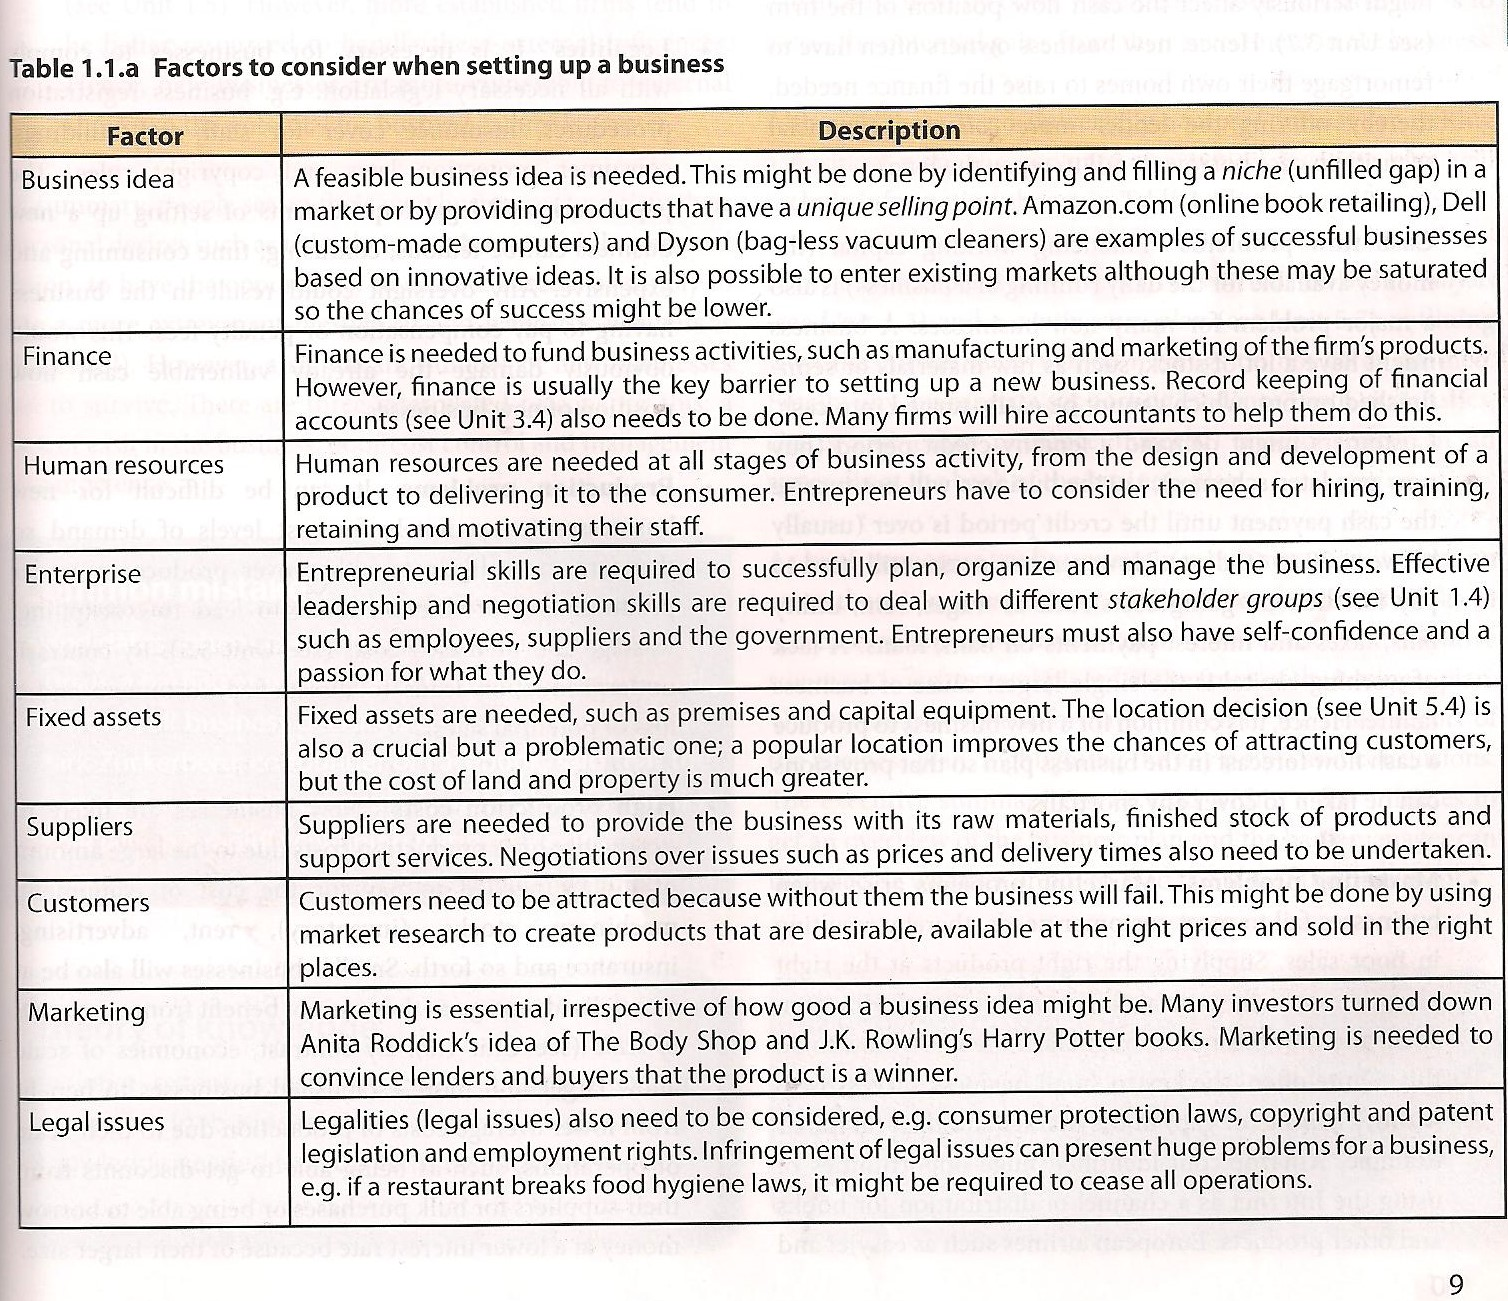 similarities between entrepreneurship and intrapreneurship Tietz, matthias a, new venture creation mode: differences between nascent intrapreneurs and nascent entrepreneurs (2013) electronic business starters – as nascent entrepreneurs (nes) or as nascent intrapreneurs (nis, or corporate in essay three i compare the start-up and abandonment rates of nis and nes.